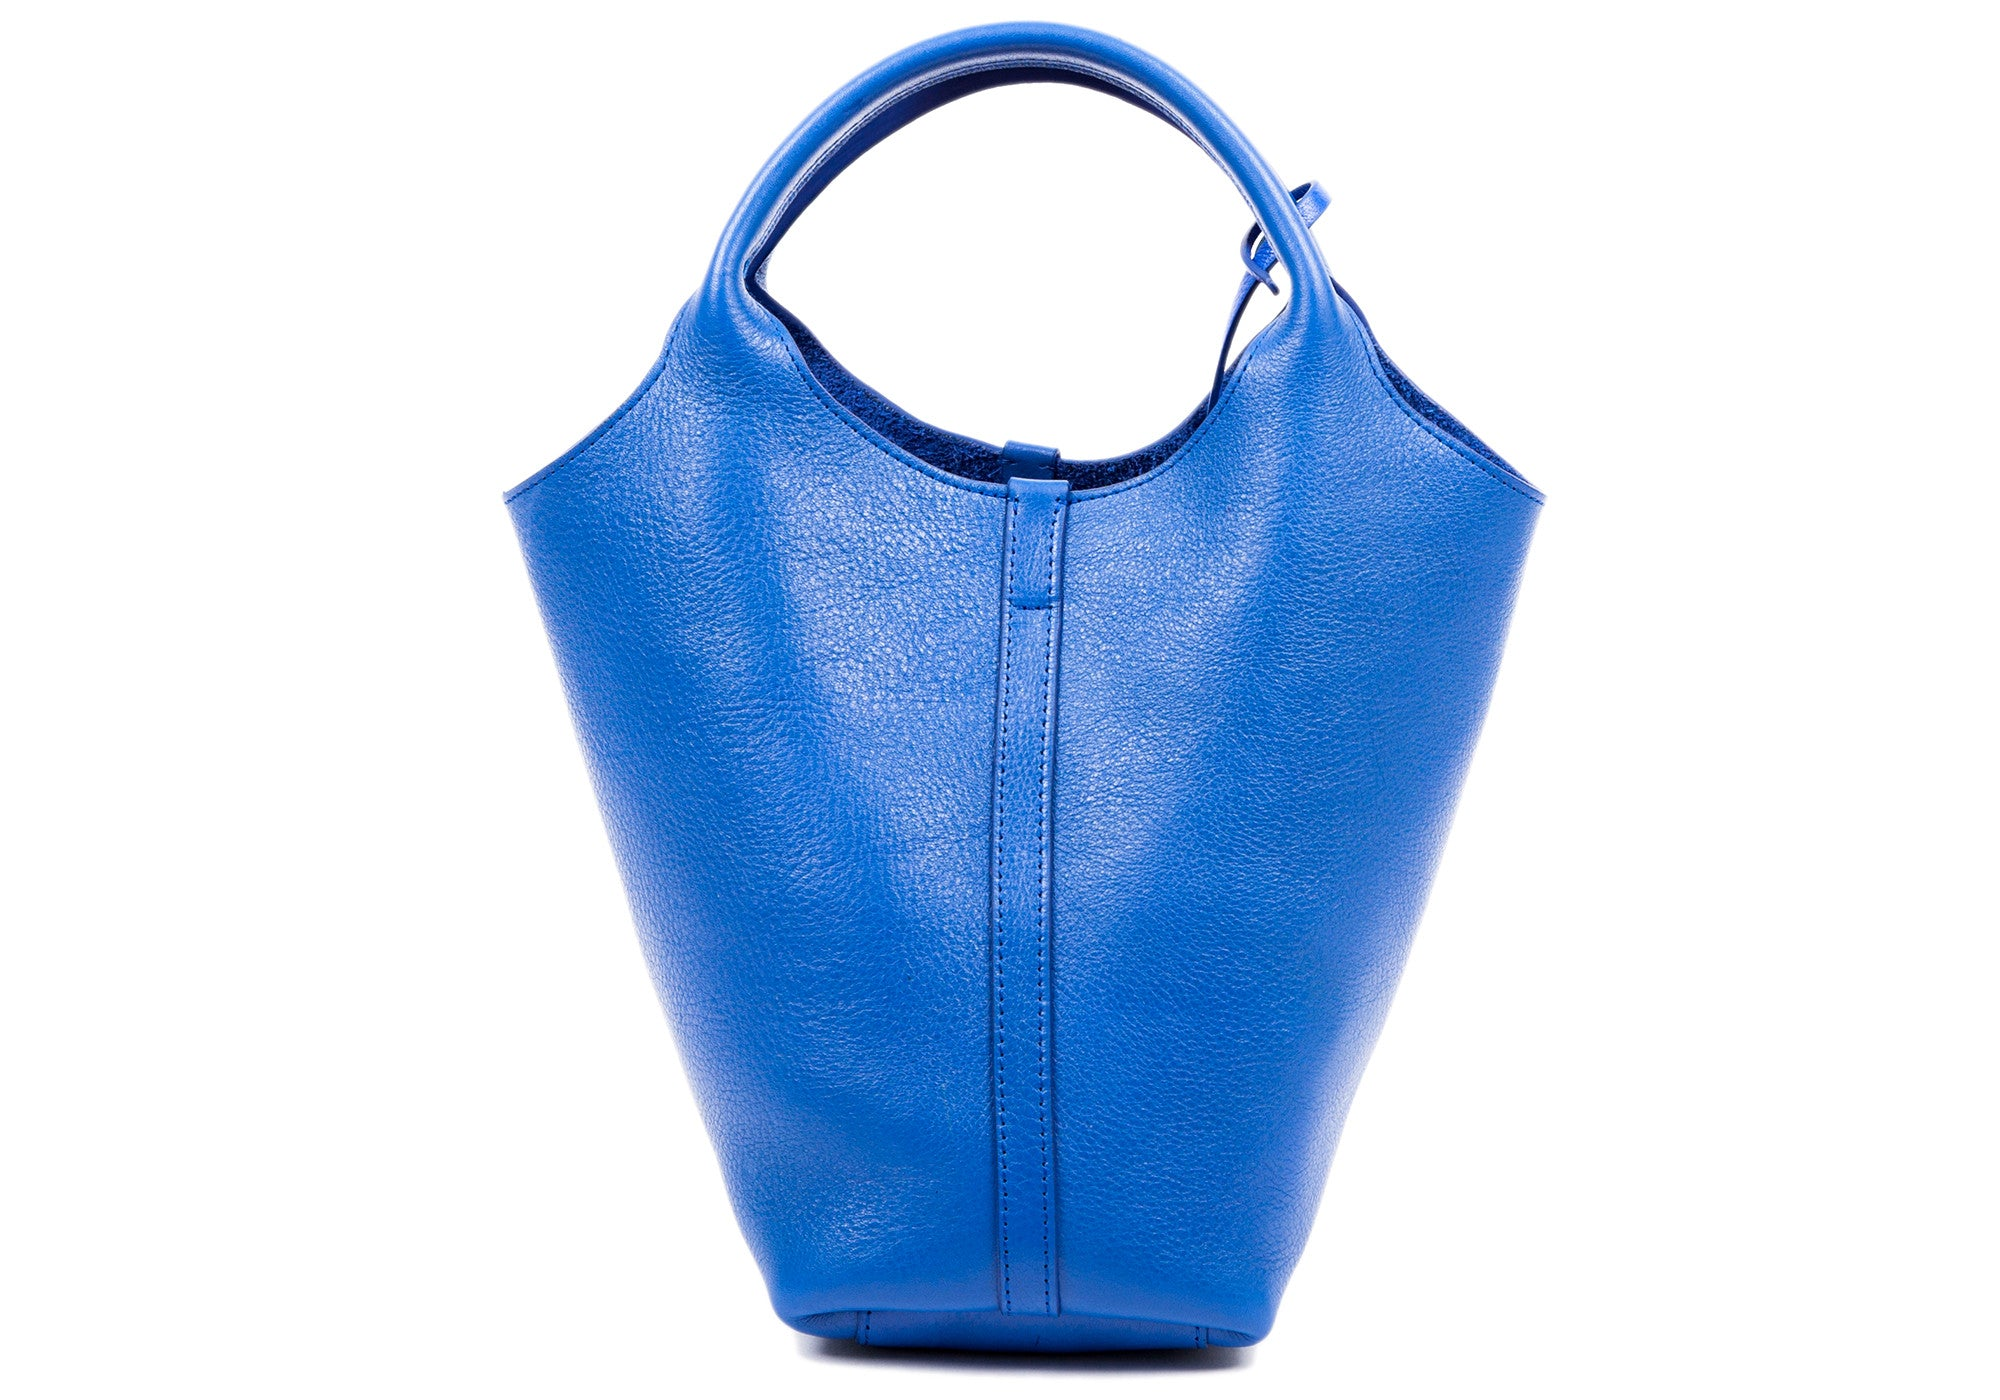 The One-Piece Bag Electric Blue|Front Leather View